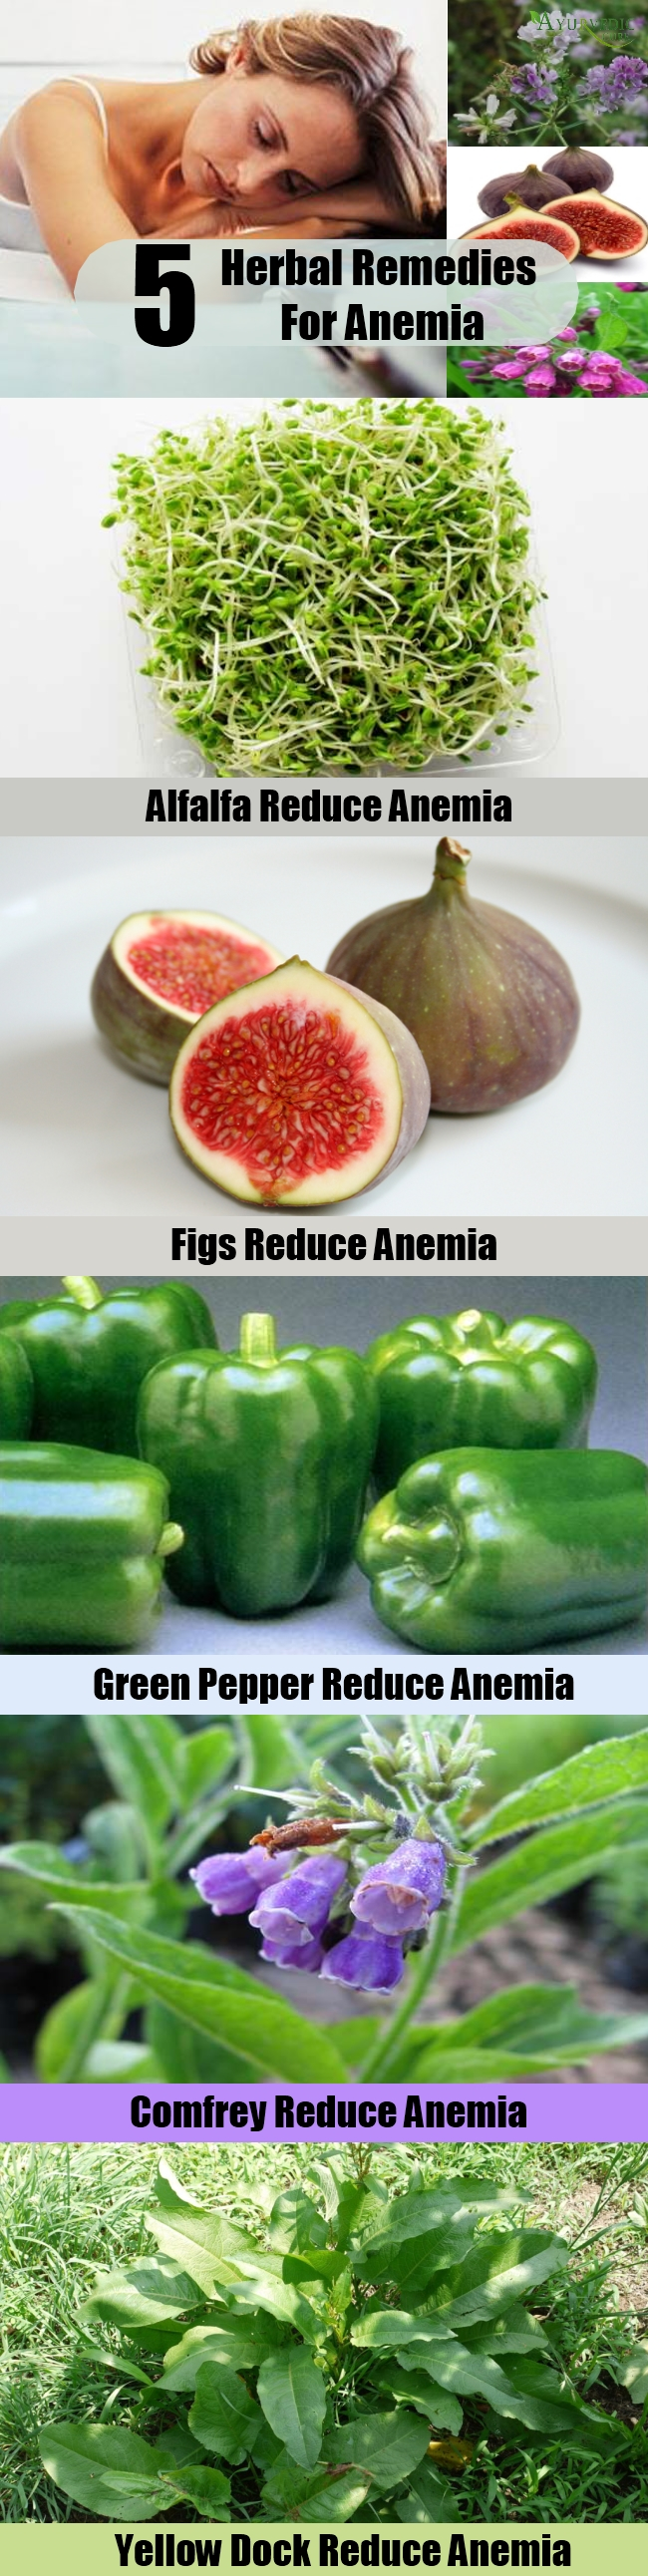 5 Excellent Herbal Remedies For Anemia